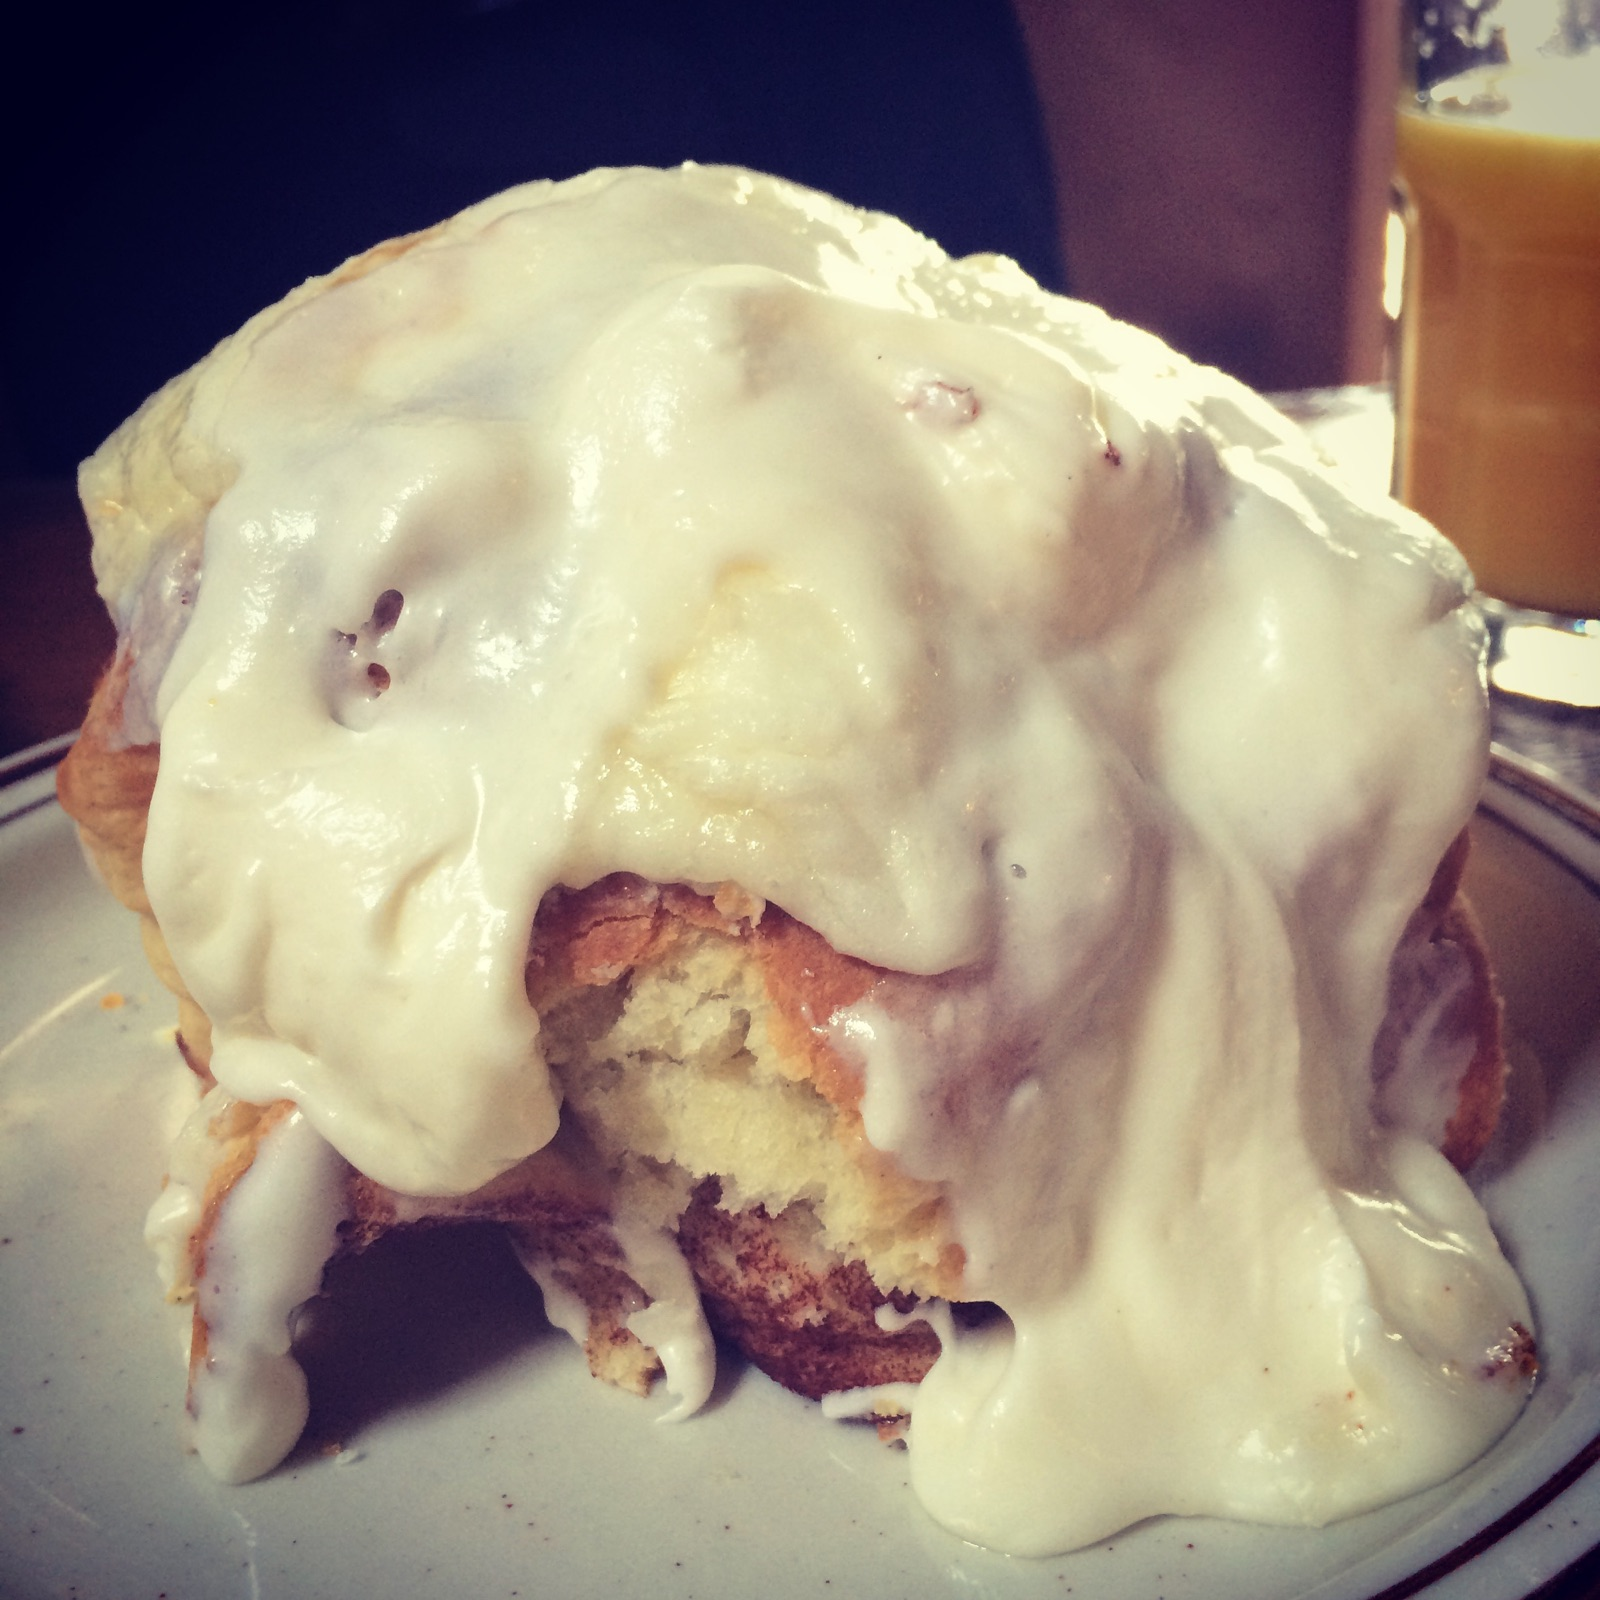 The biscuit cinnamon roll from Denver Biscuit Company (The Good Life Denver)